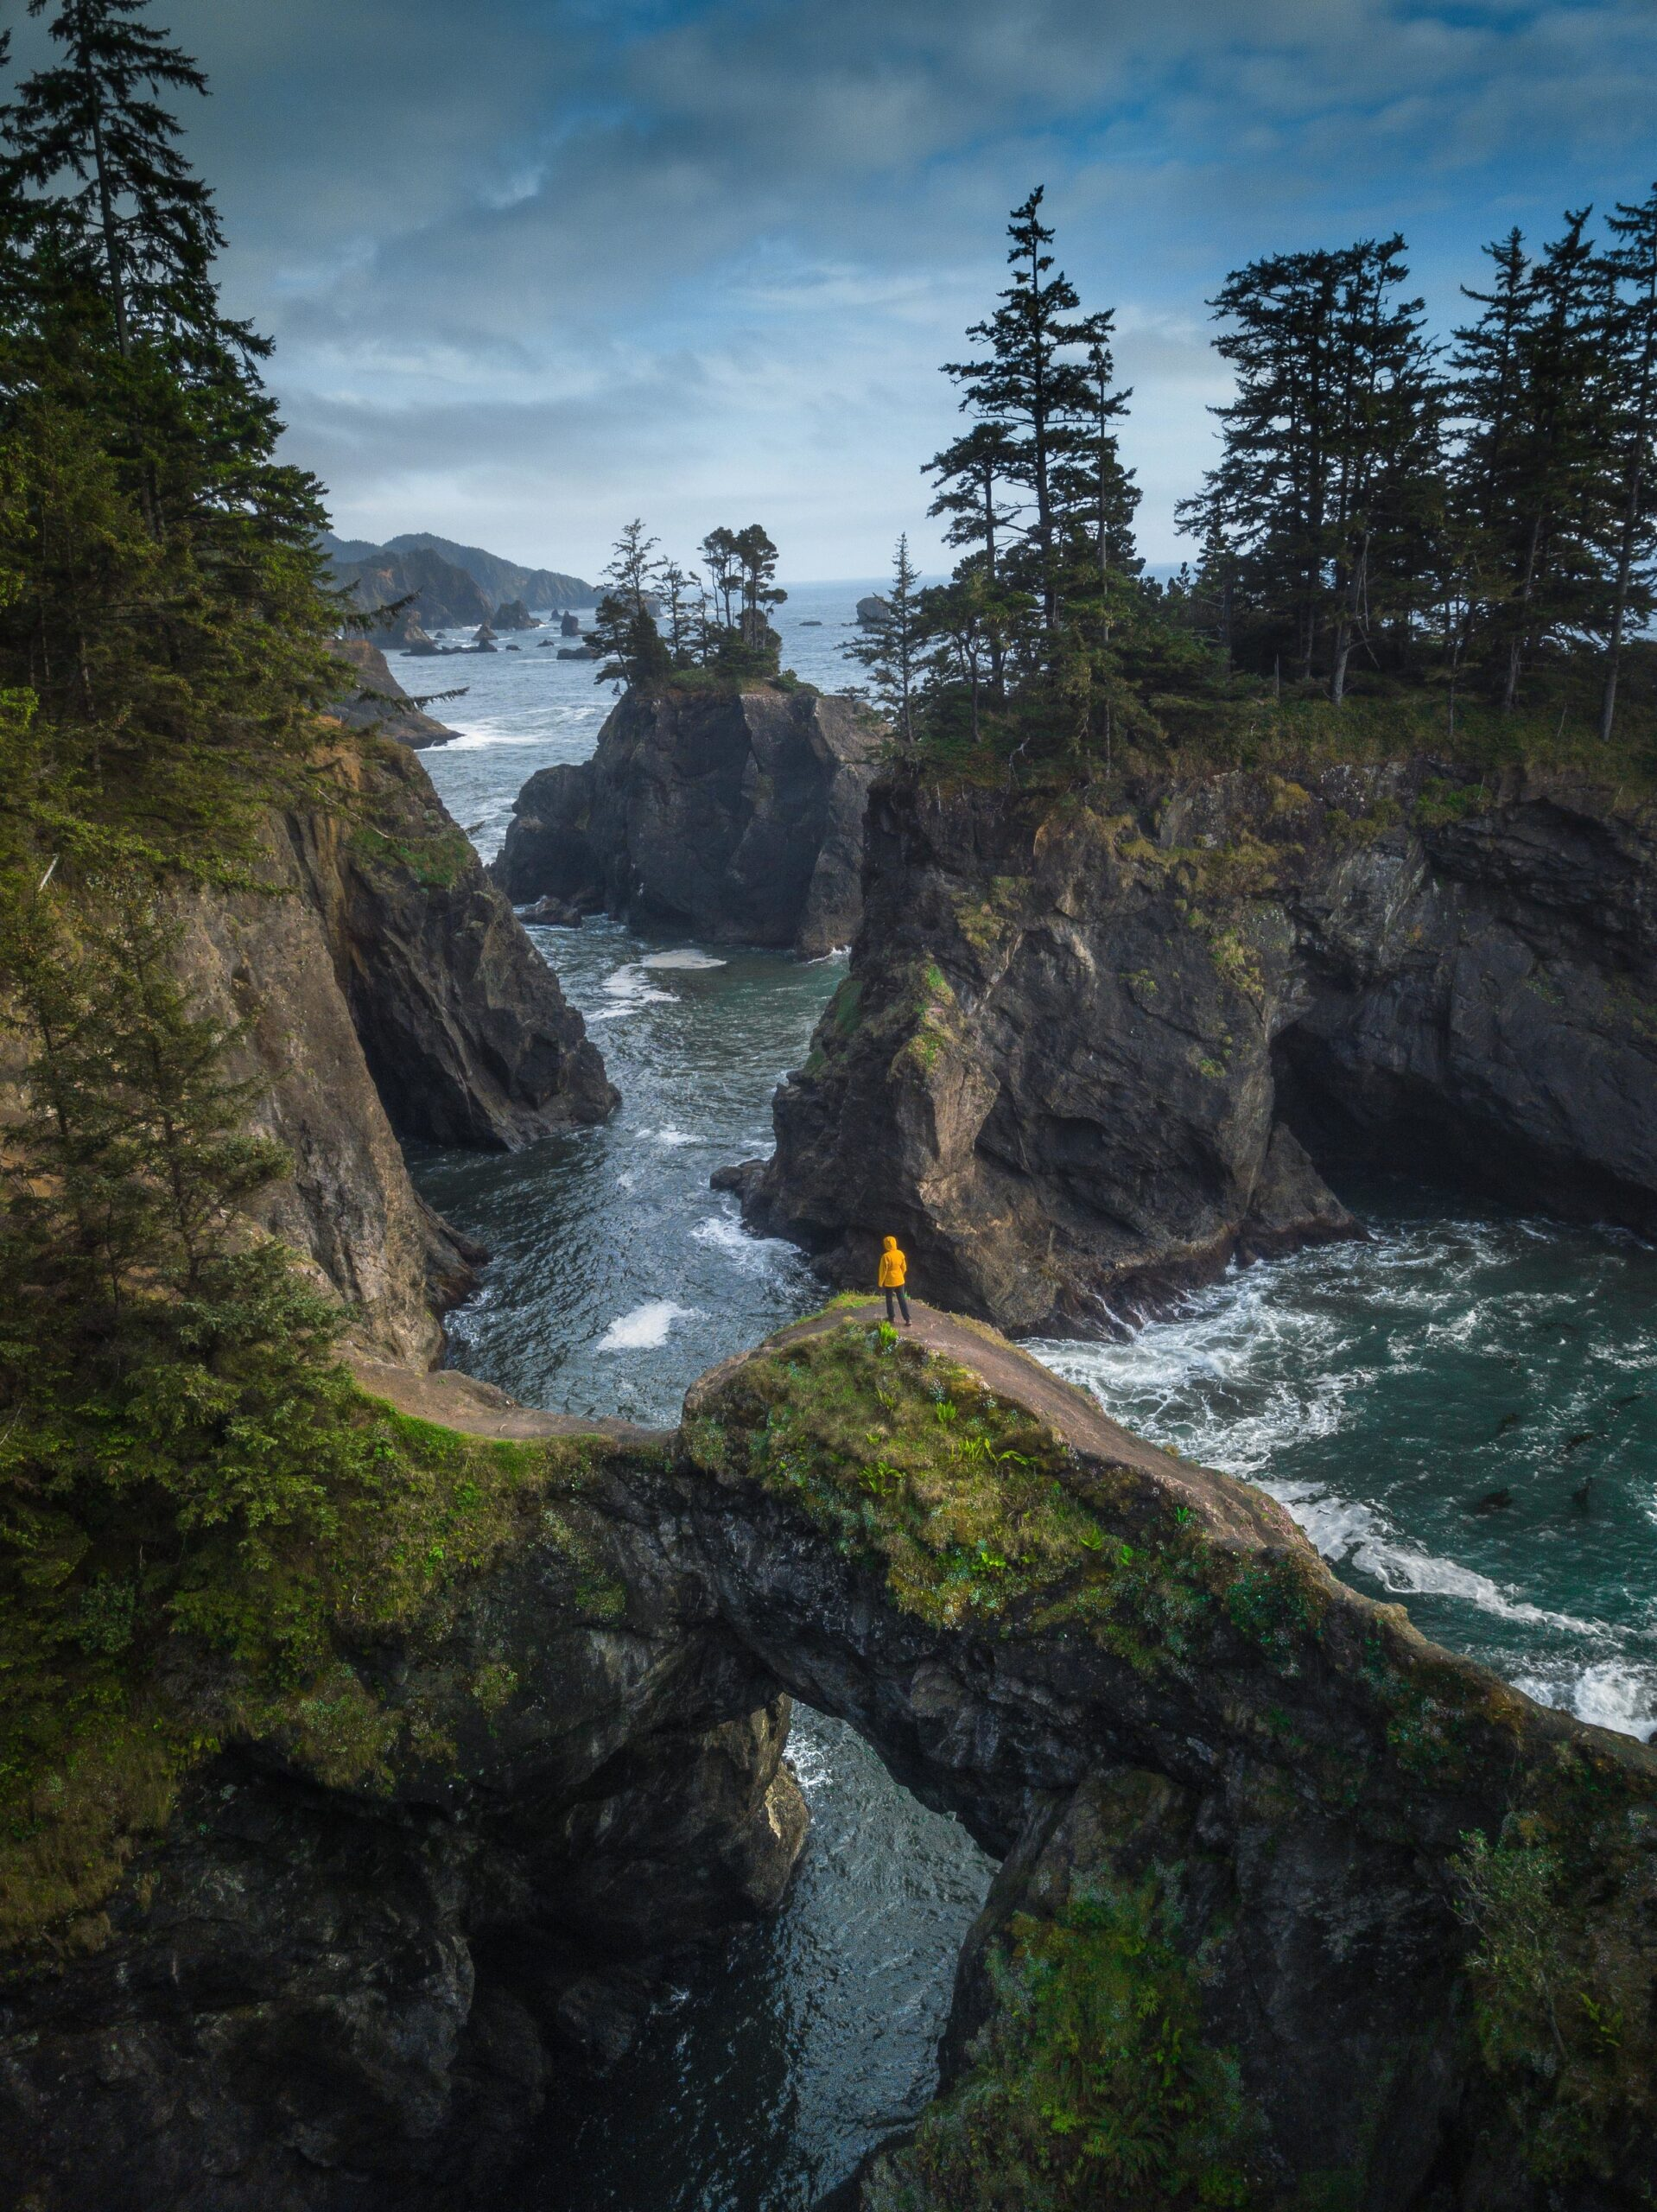 A person in a yellow coat standing on a narrow path surrounded by rocky cliffs and water on the Oregon Coast